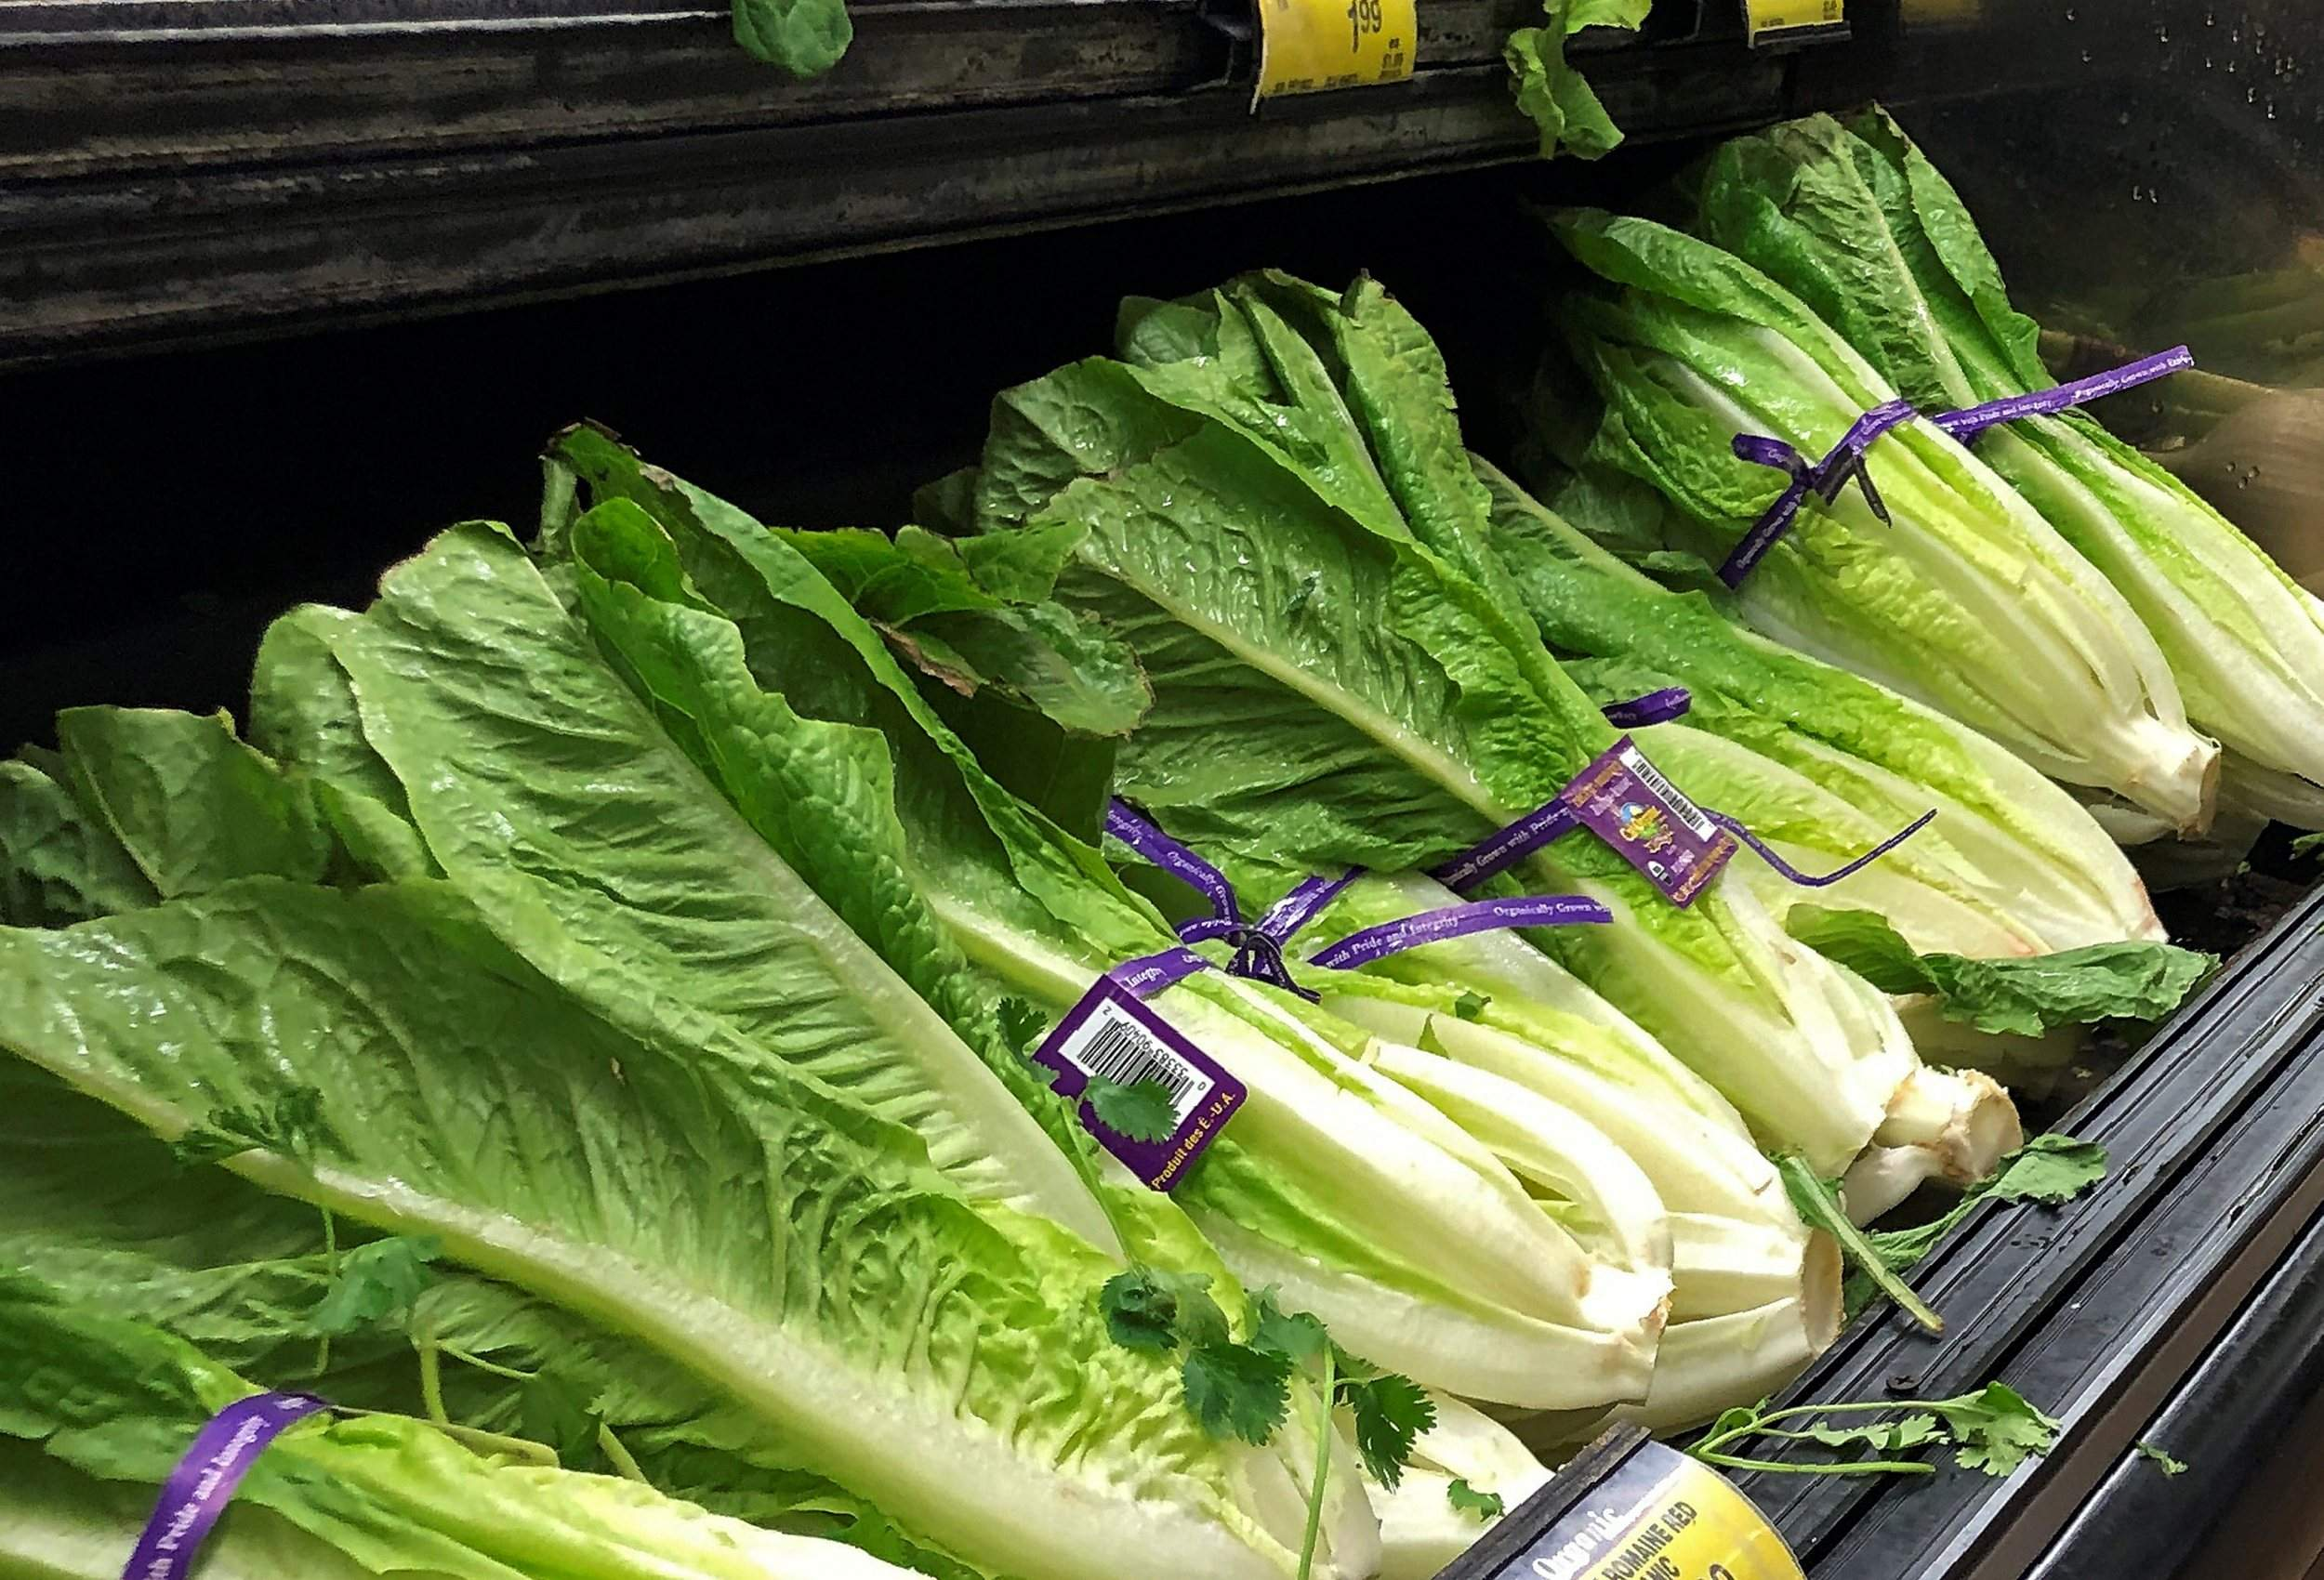 CDC Issues Warning On Romaine Lettuce After E. Coli Outbreak